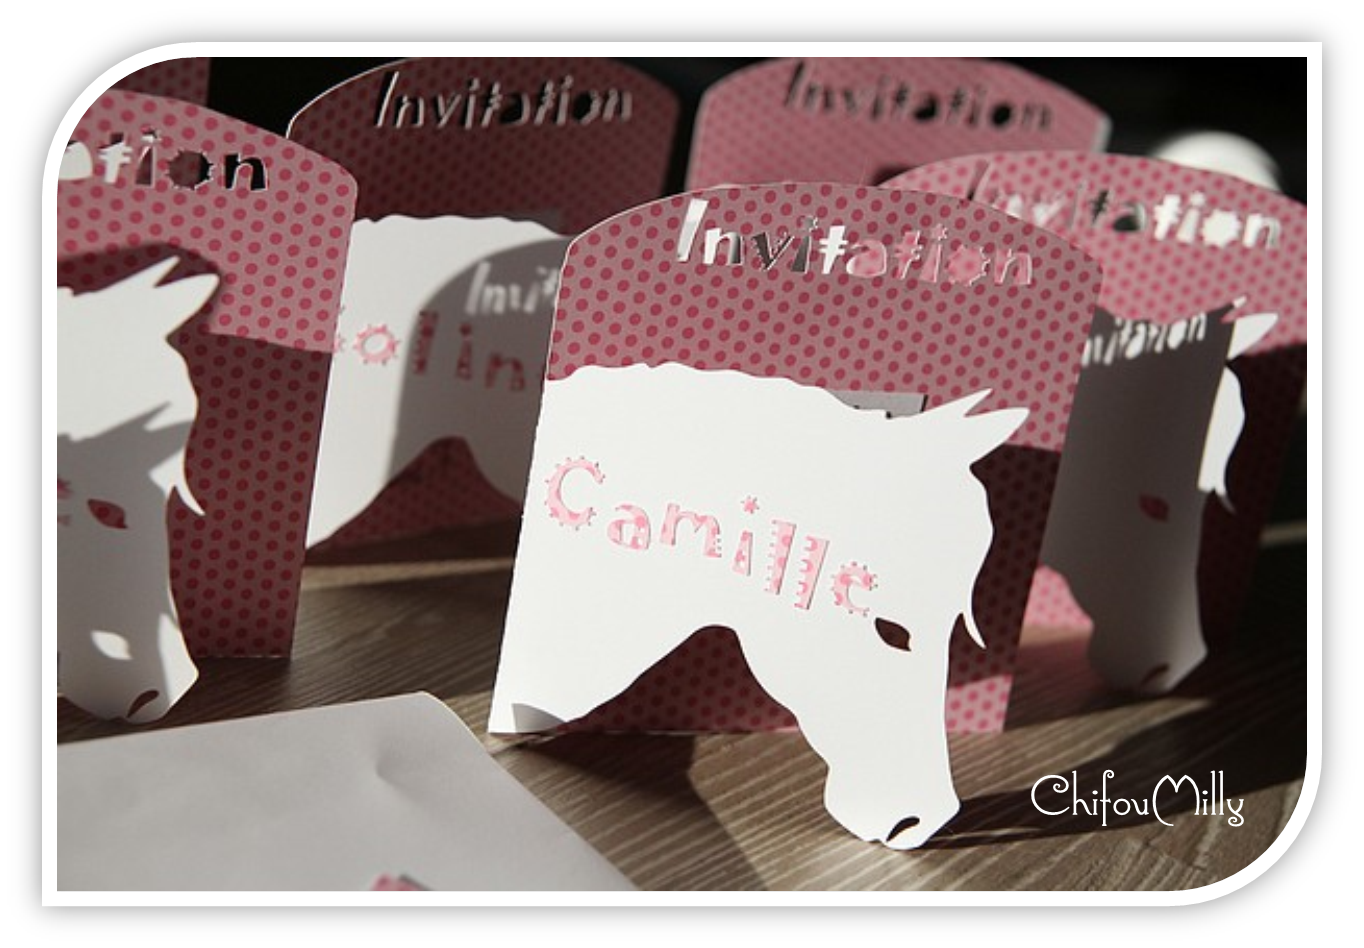 Cartes d'invitation | ChifouMilly